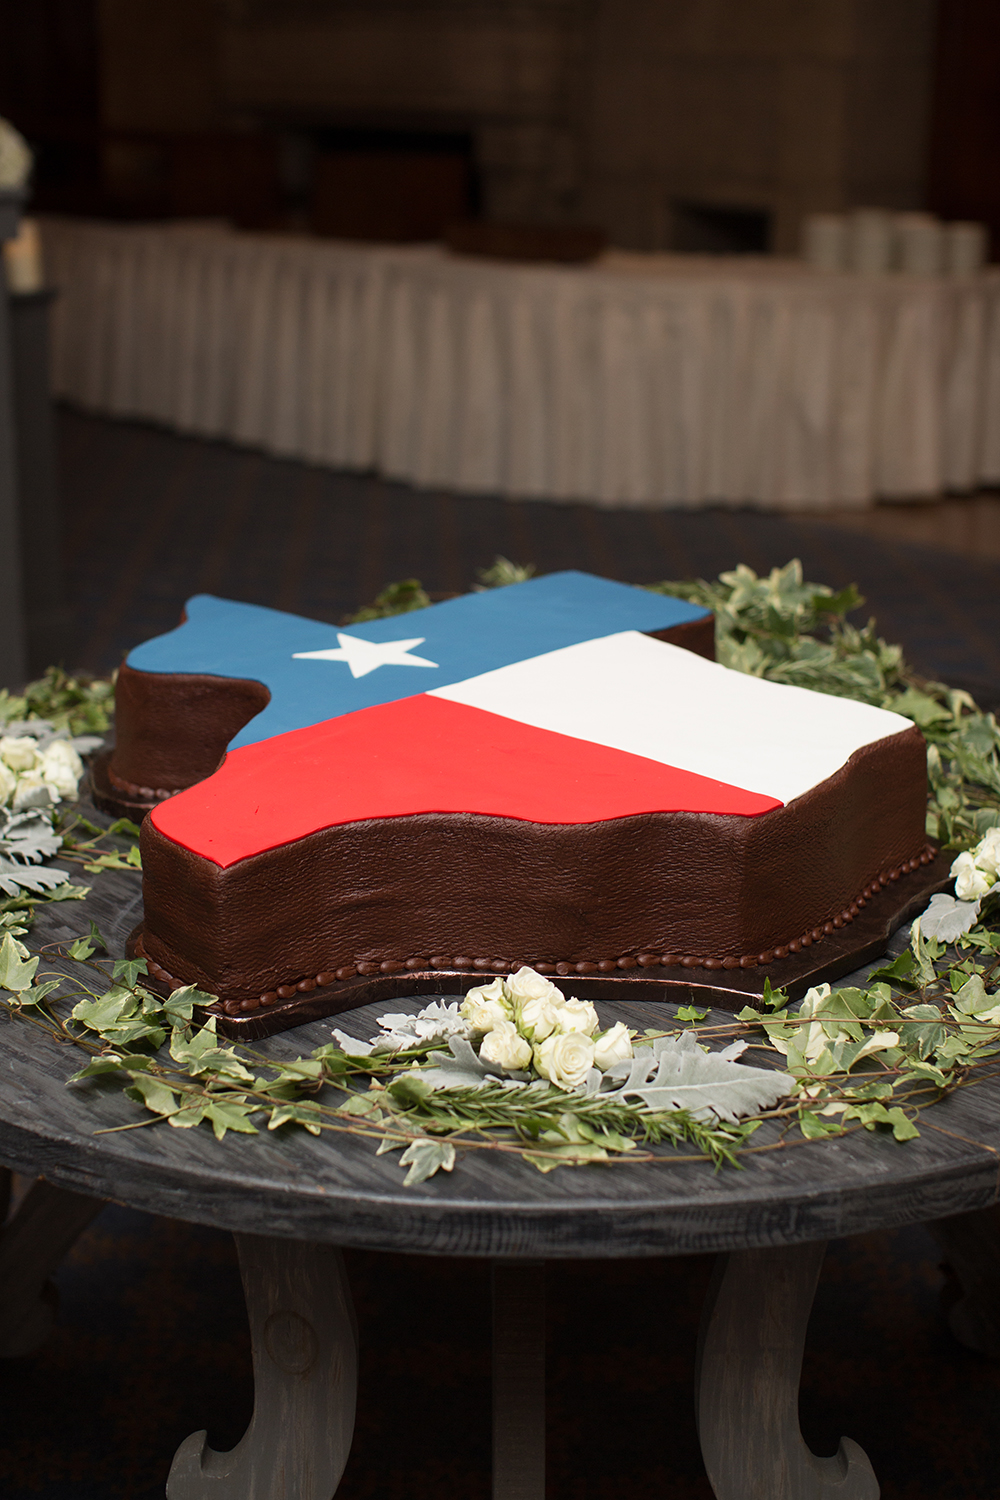 texas, wedding cake, grooms, texas shaped cake, flag, susies cakes, wedding, houston